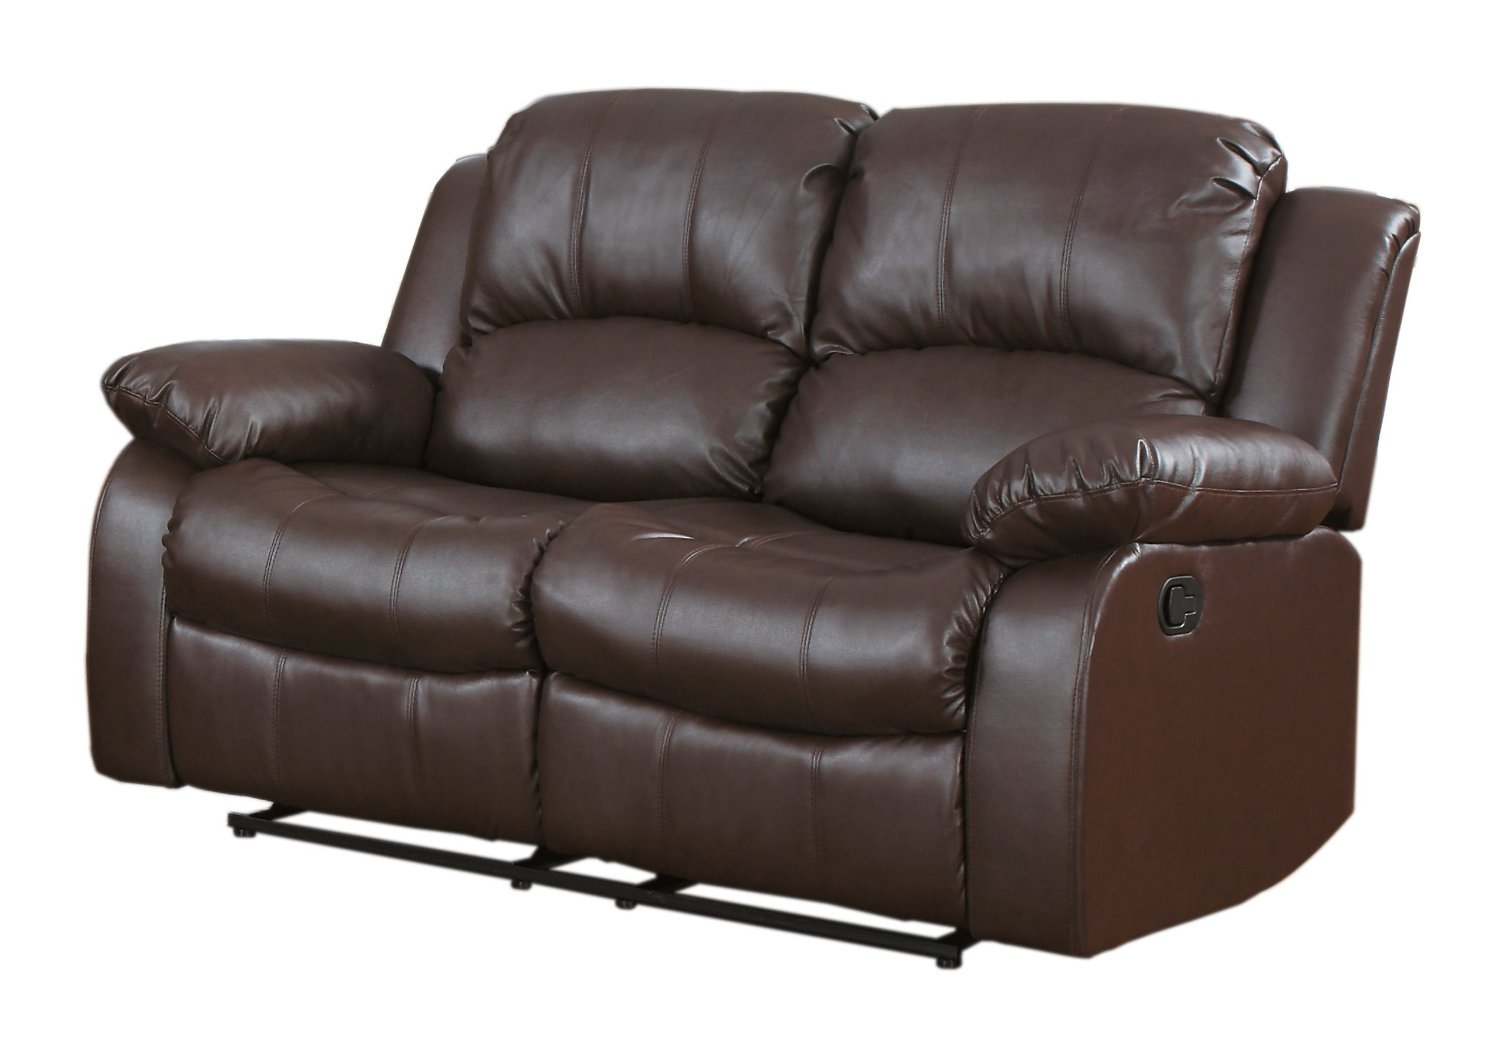 Finding the best power recliner loveseat in the marketplace best recliners Leather sofa and loveseat recliner